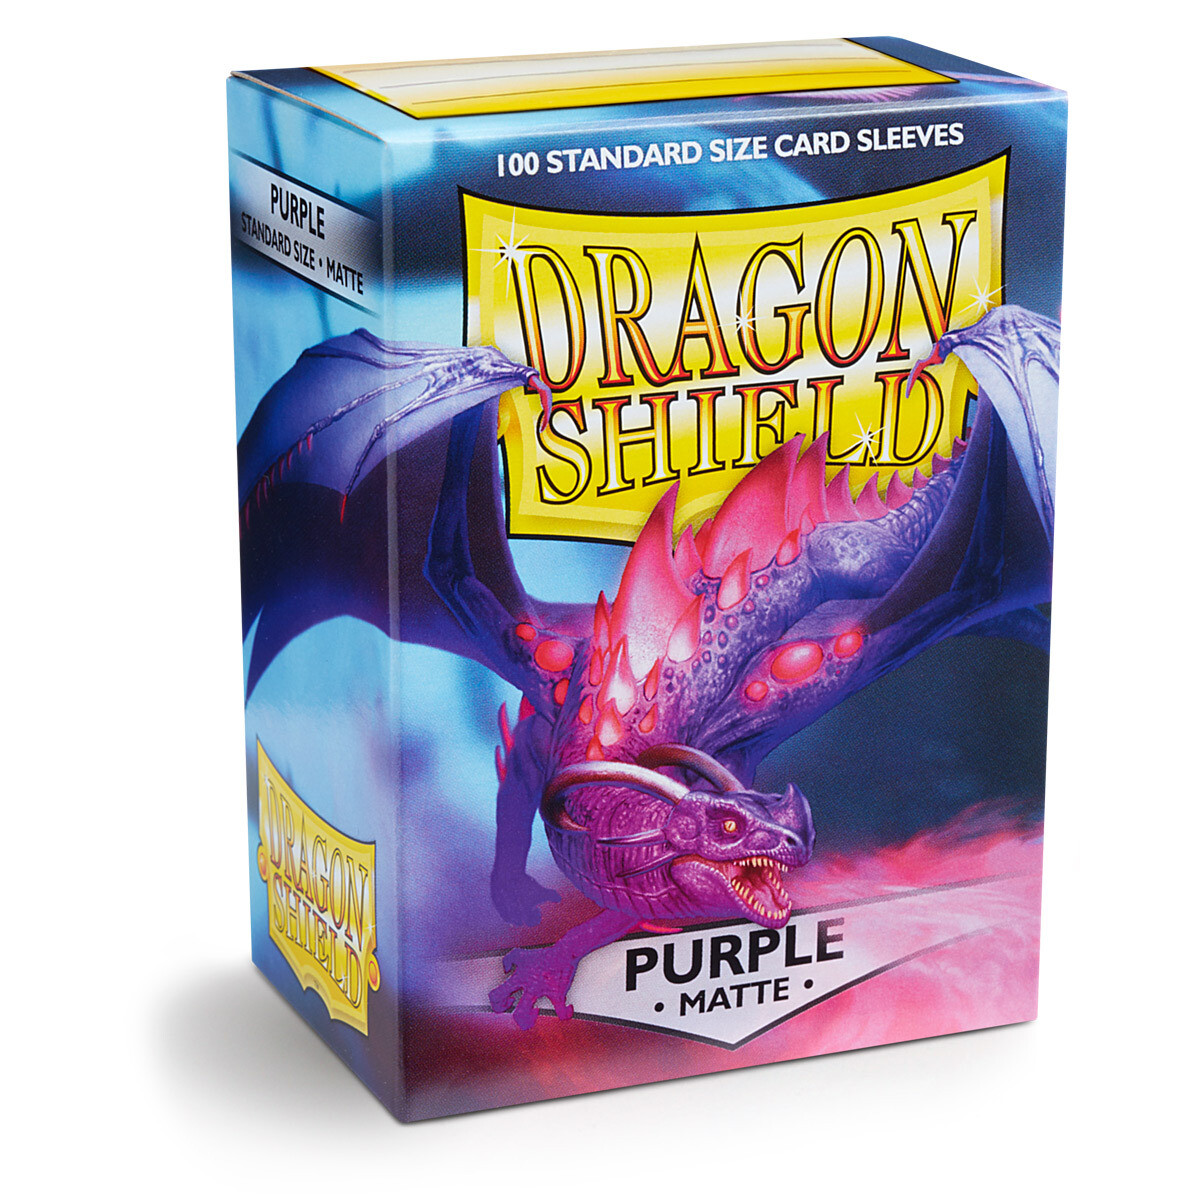 Dragon Shield 100 Sleeves - Matte Purple